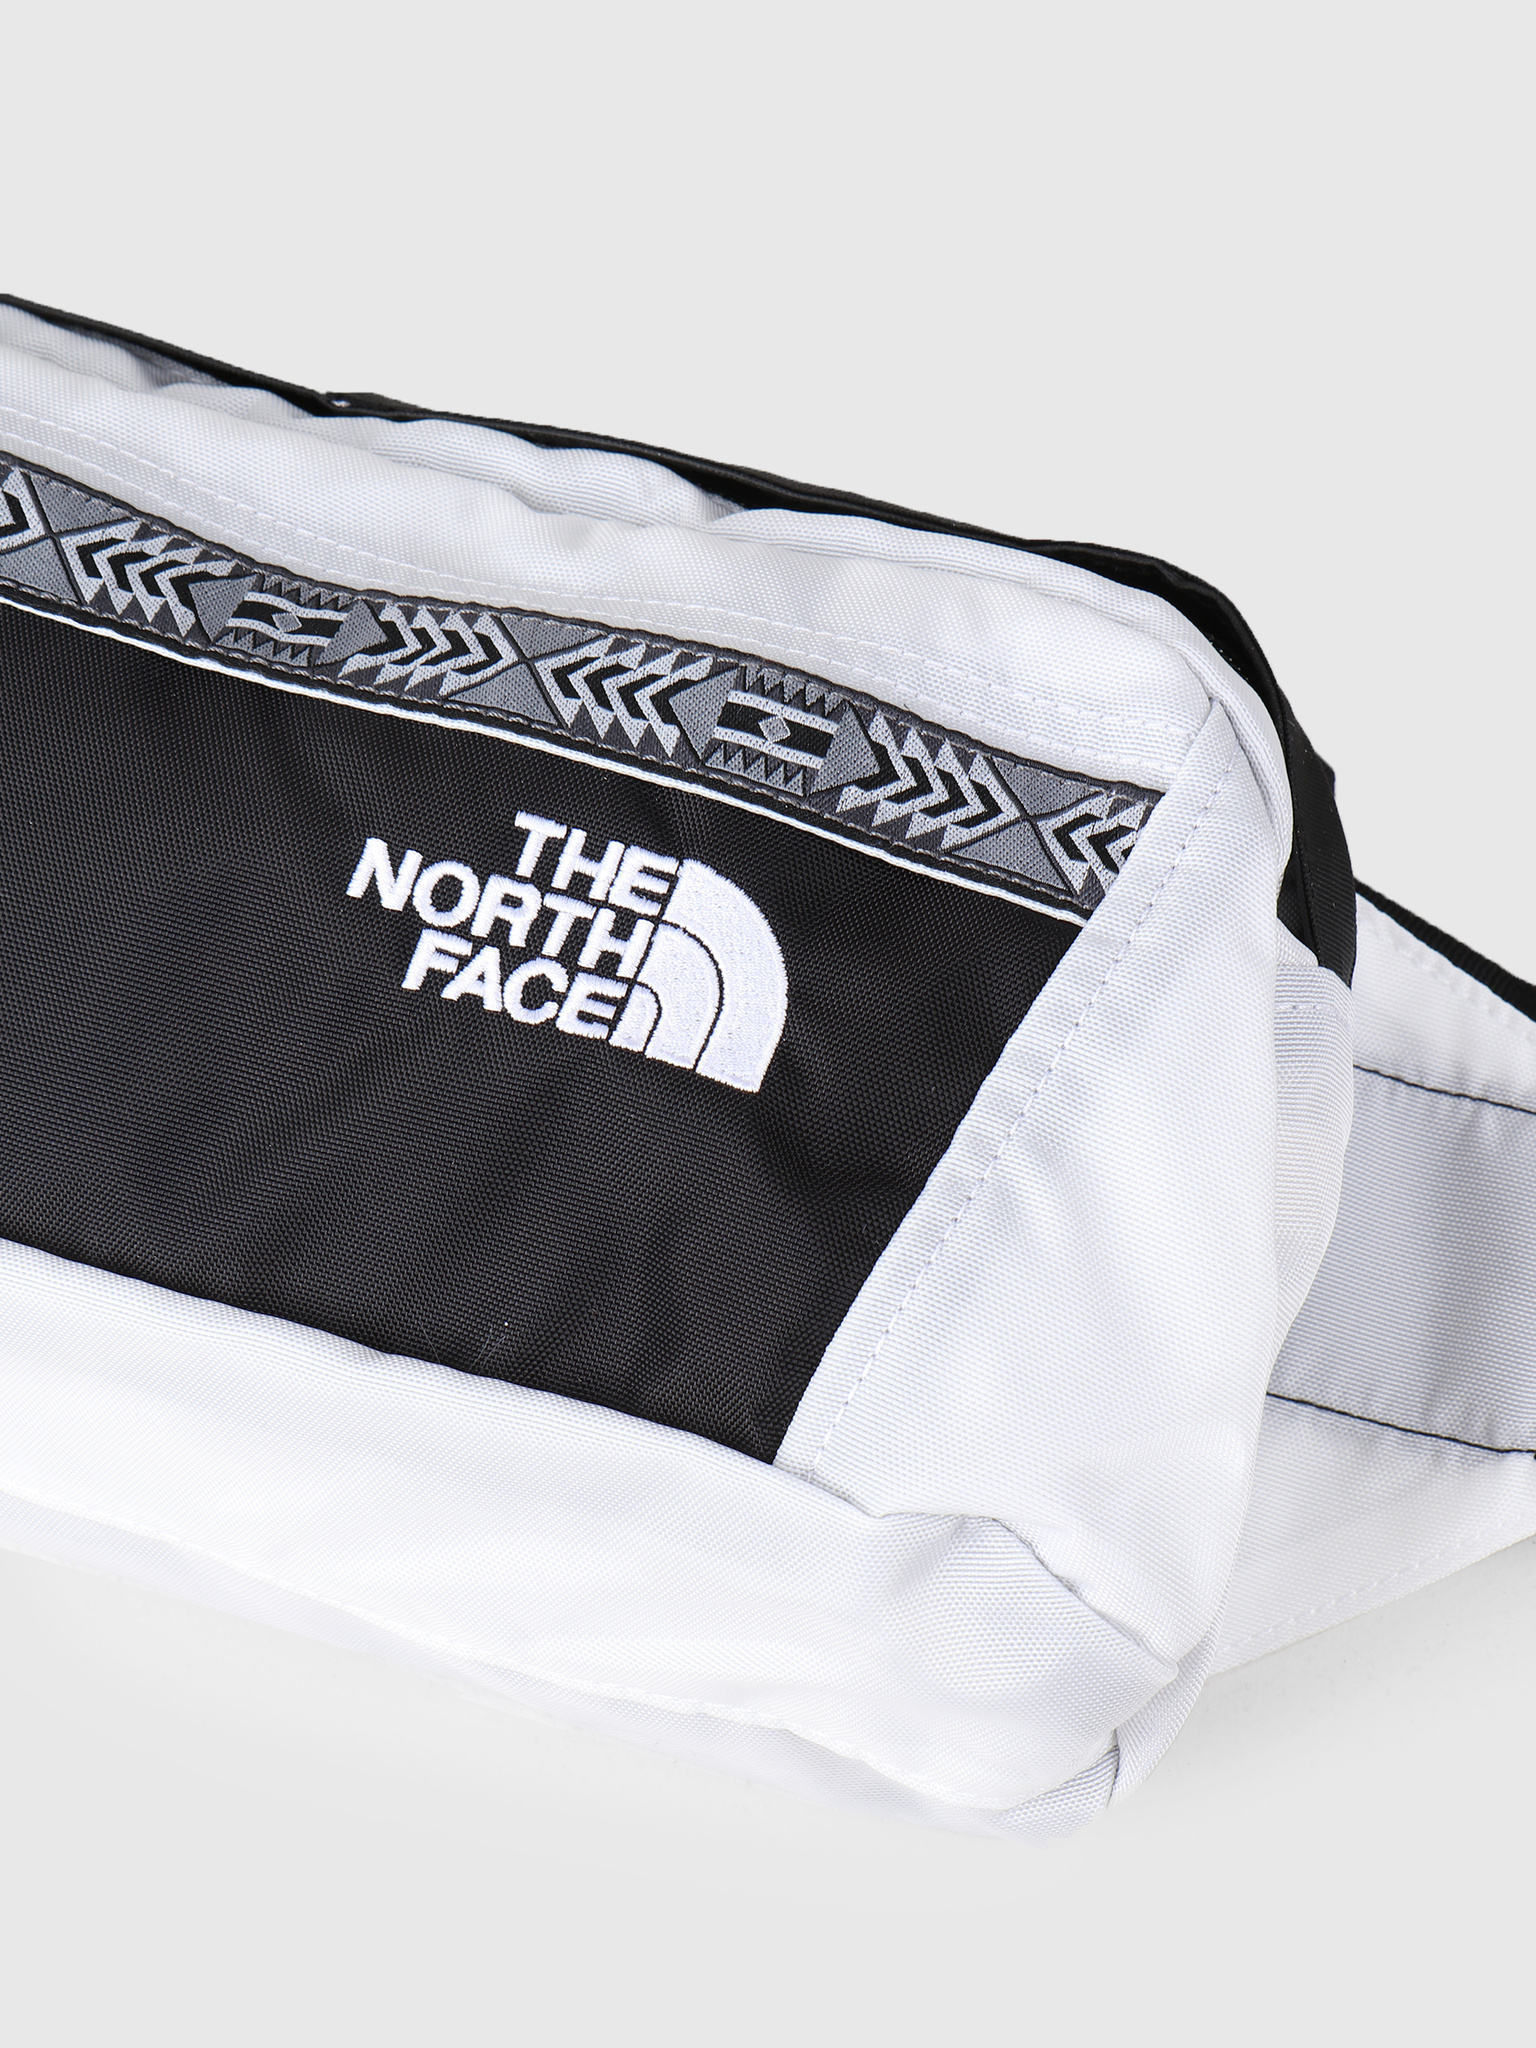 The North Face The North Face 92 Rage E S TNF White Rage T93KXD9QY